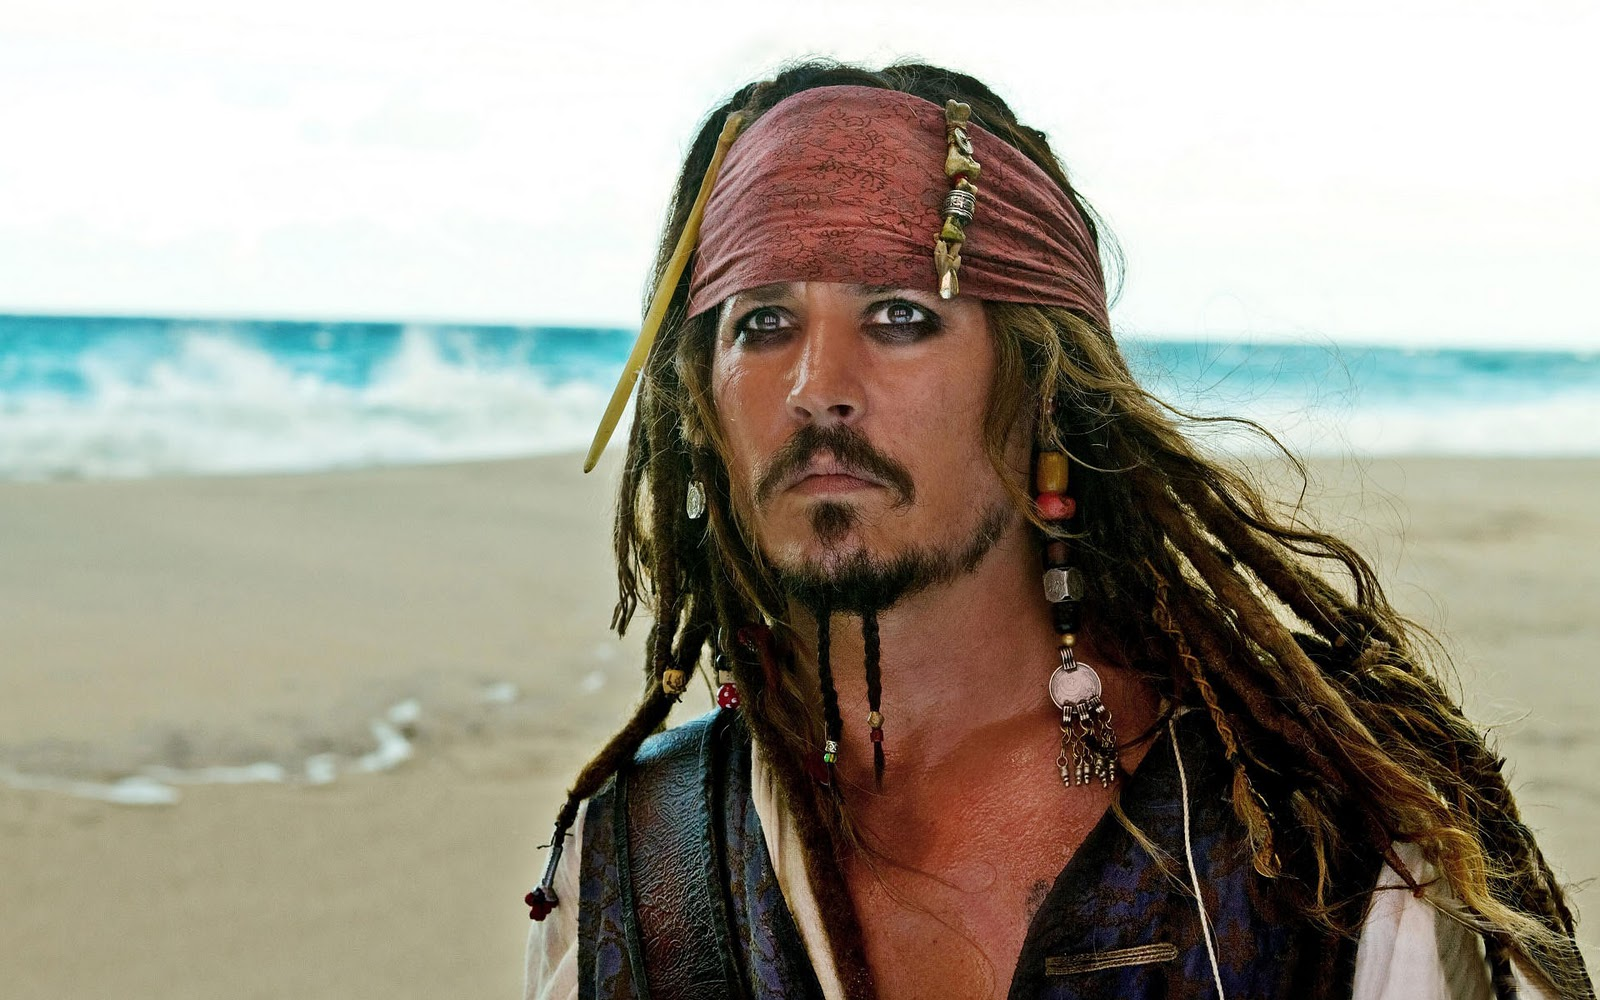 http://1.bp.blogspot.com/-rB7SoO95zmE/TtcKt1KhMxI/AAAAAAAAAgo/ojudBksHEhI/s1600/Johnny-Depp-pictures-desktop-Wallpapers-HD-photo-images-16.jpg